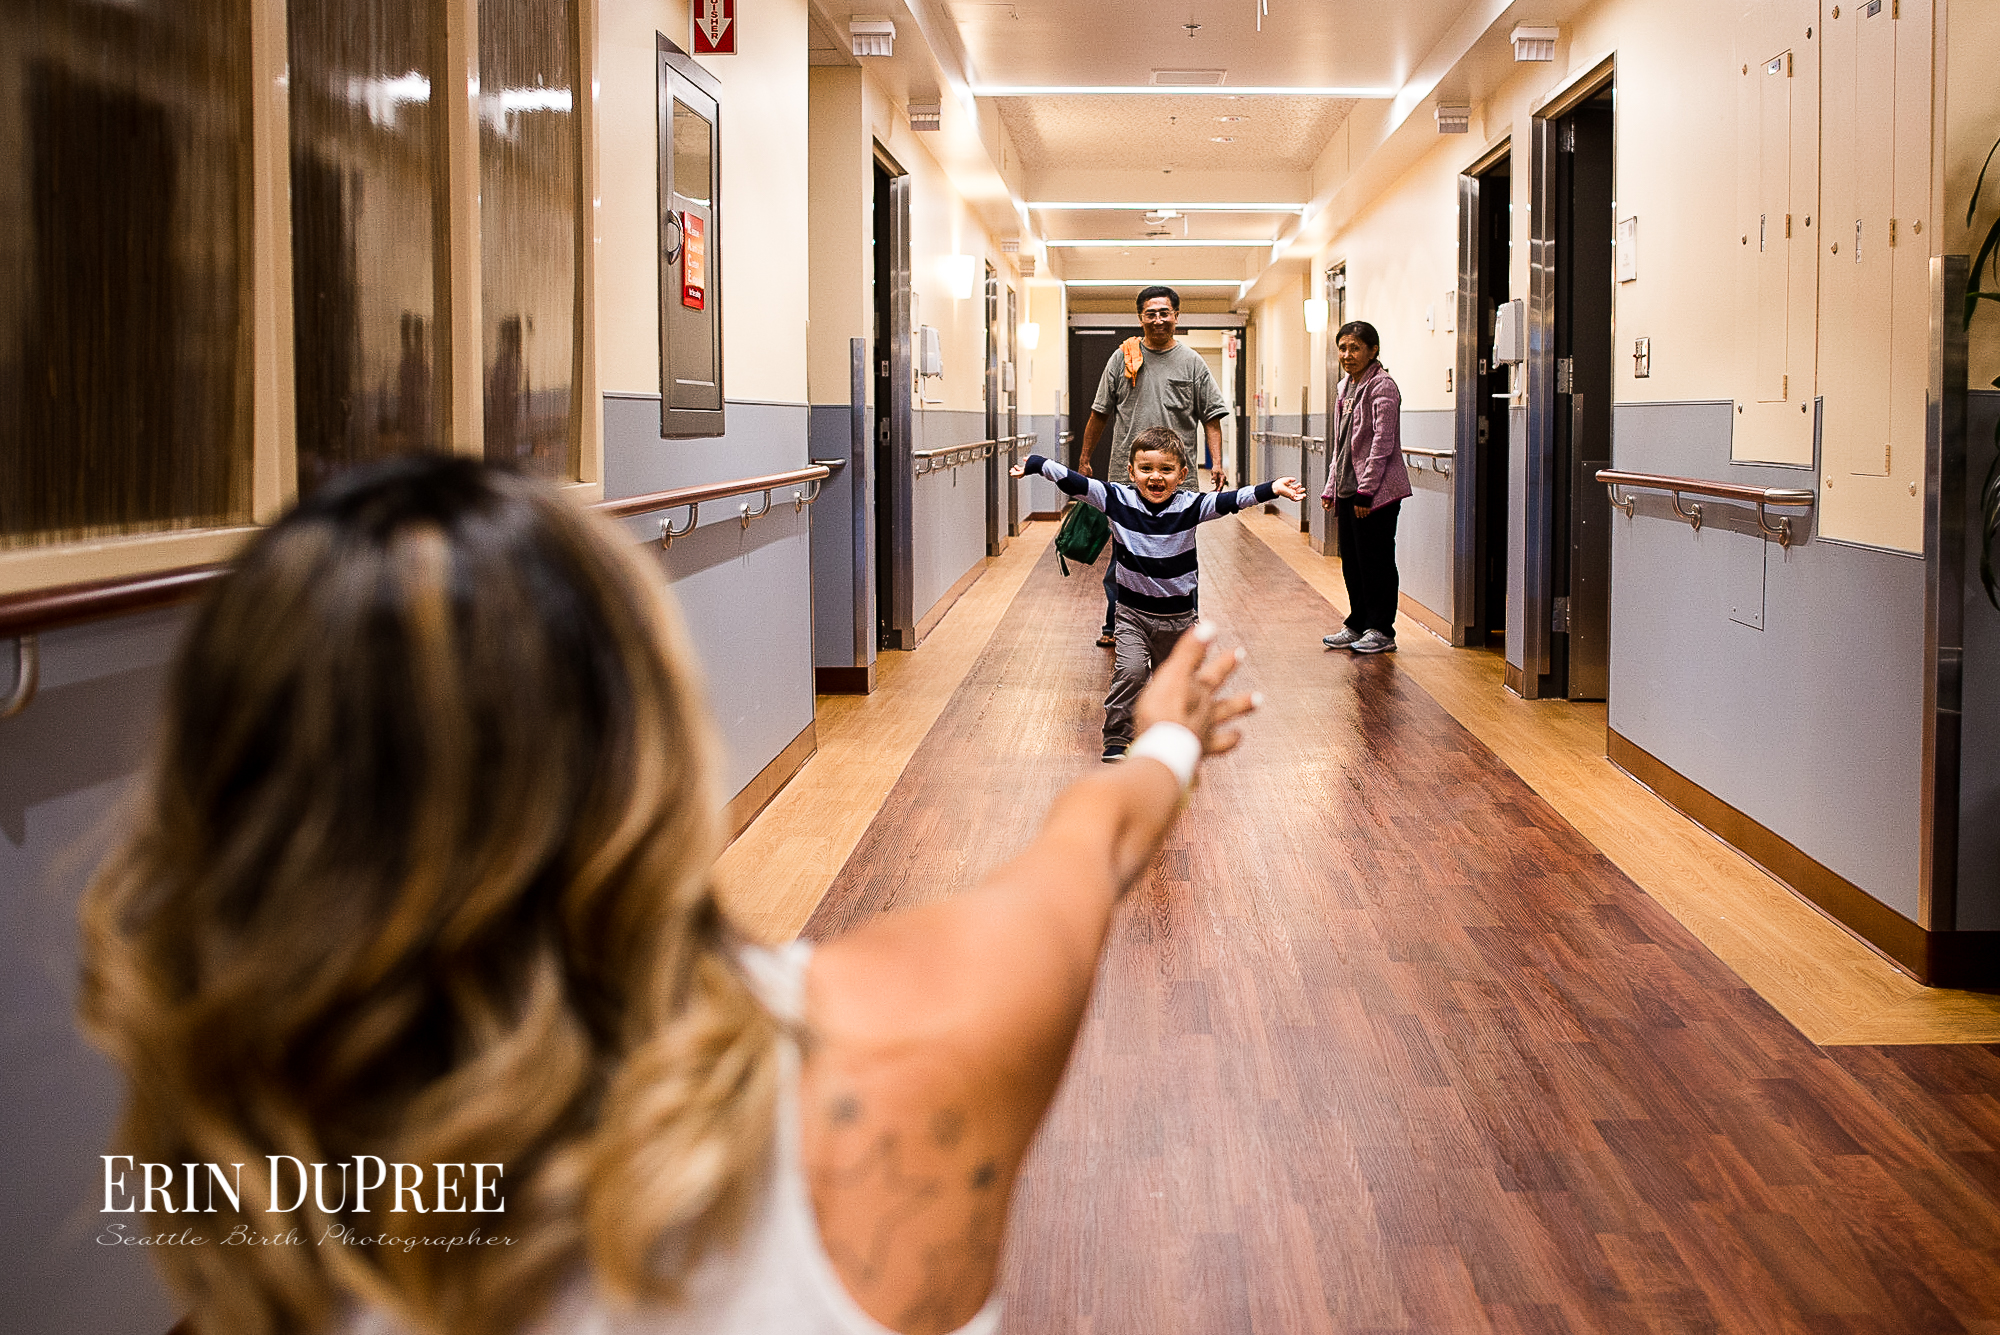 Son running to his mom with open arms in hallway by Seattle Birth Photographer